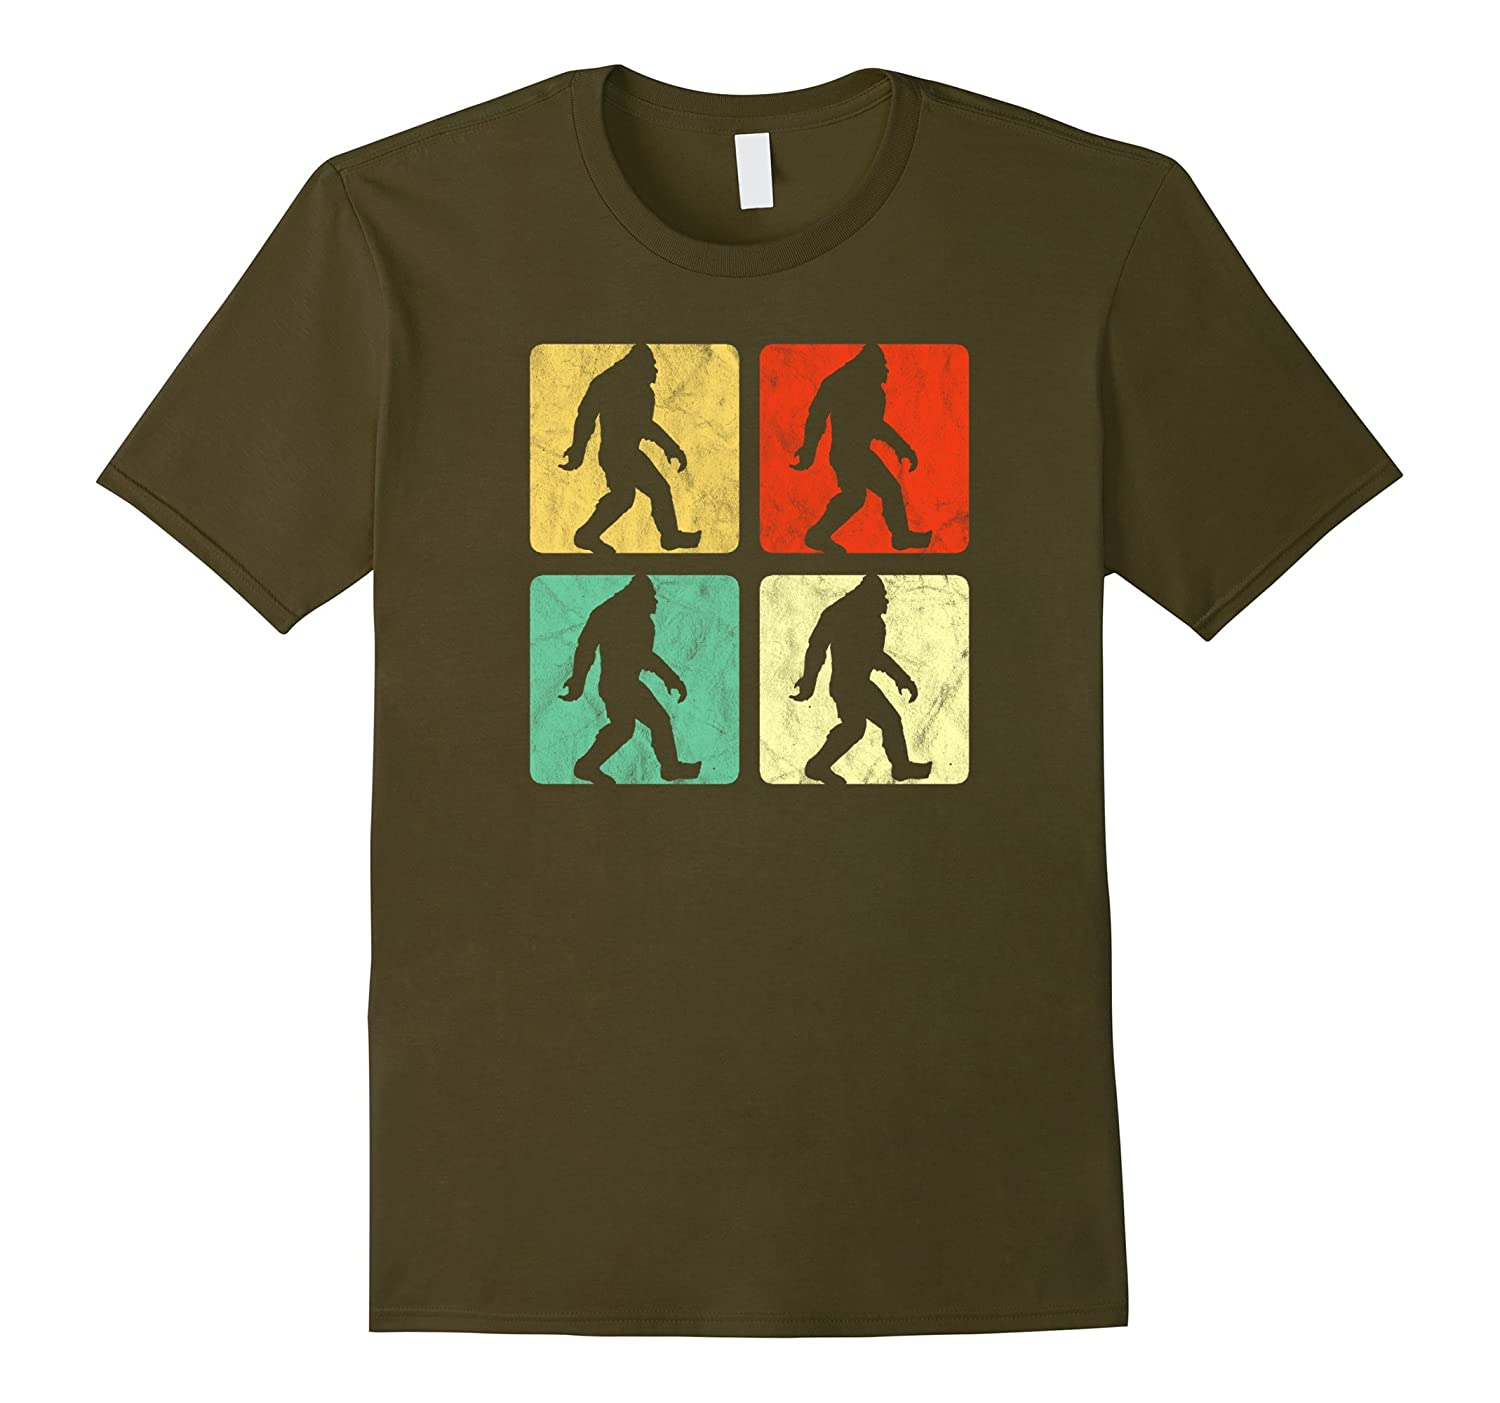 Retro Bigfoot Pop Art Design T-Shirt - Believe!-FL